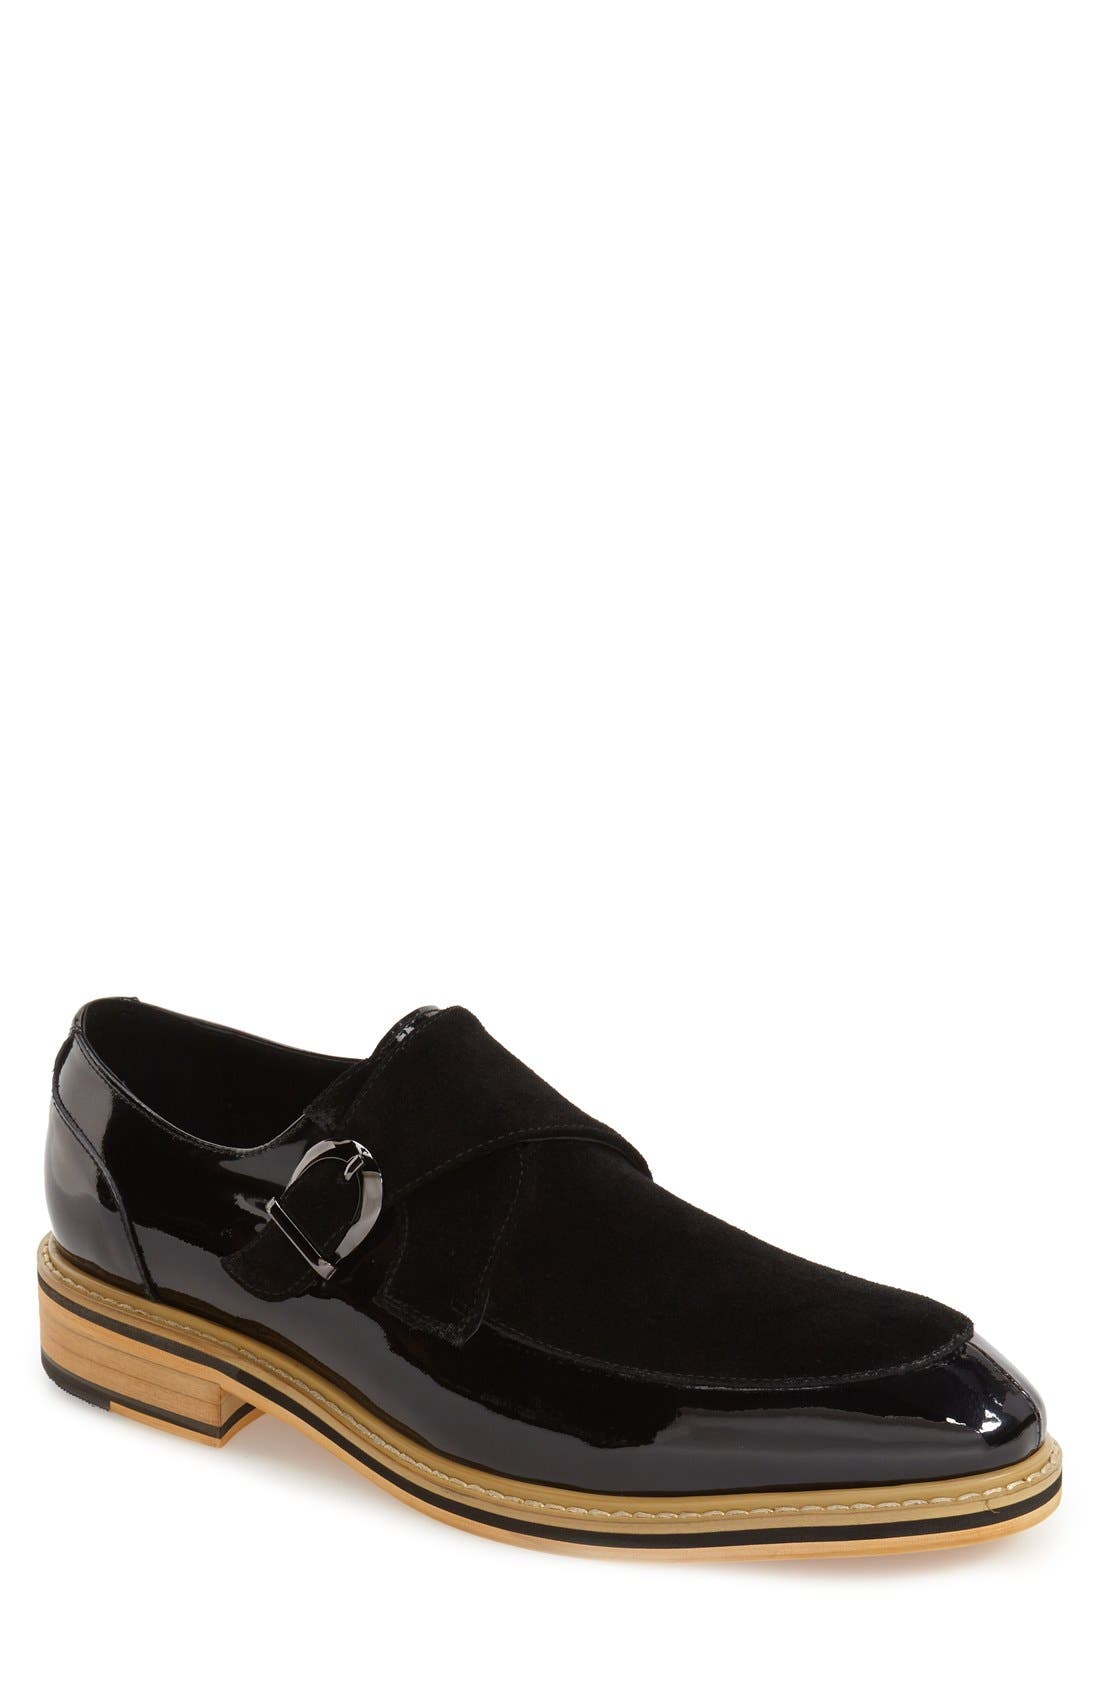 'Courbet' Monk Strap Shoe,                         Main,                         color, Black